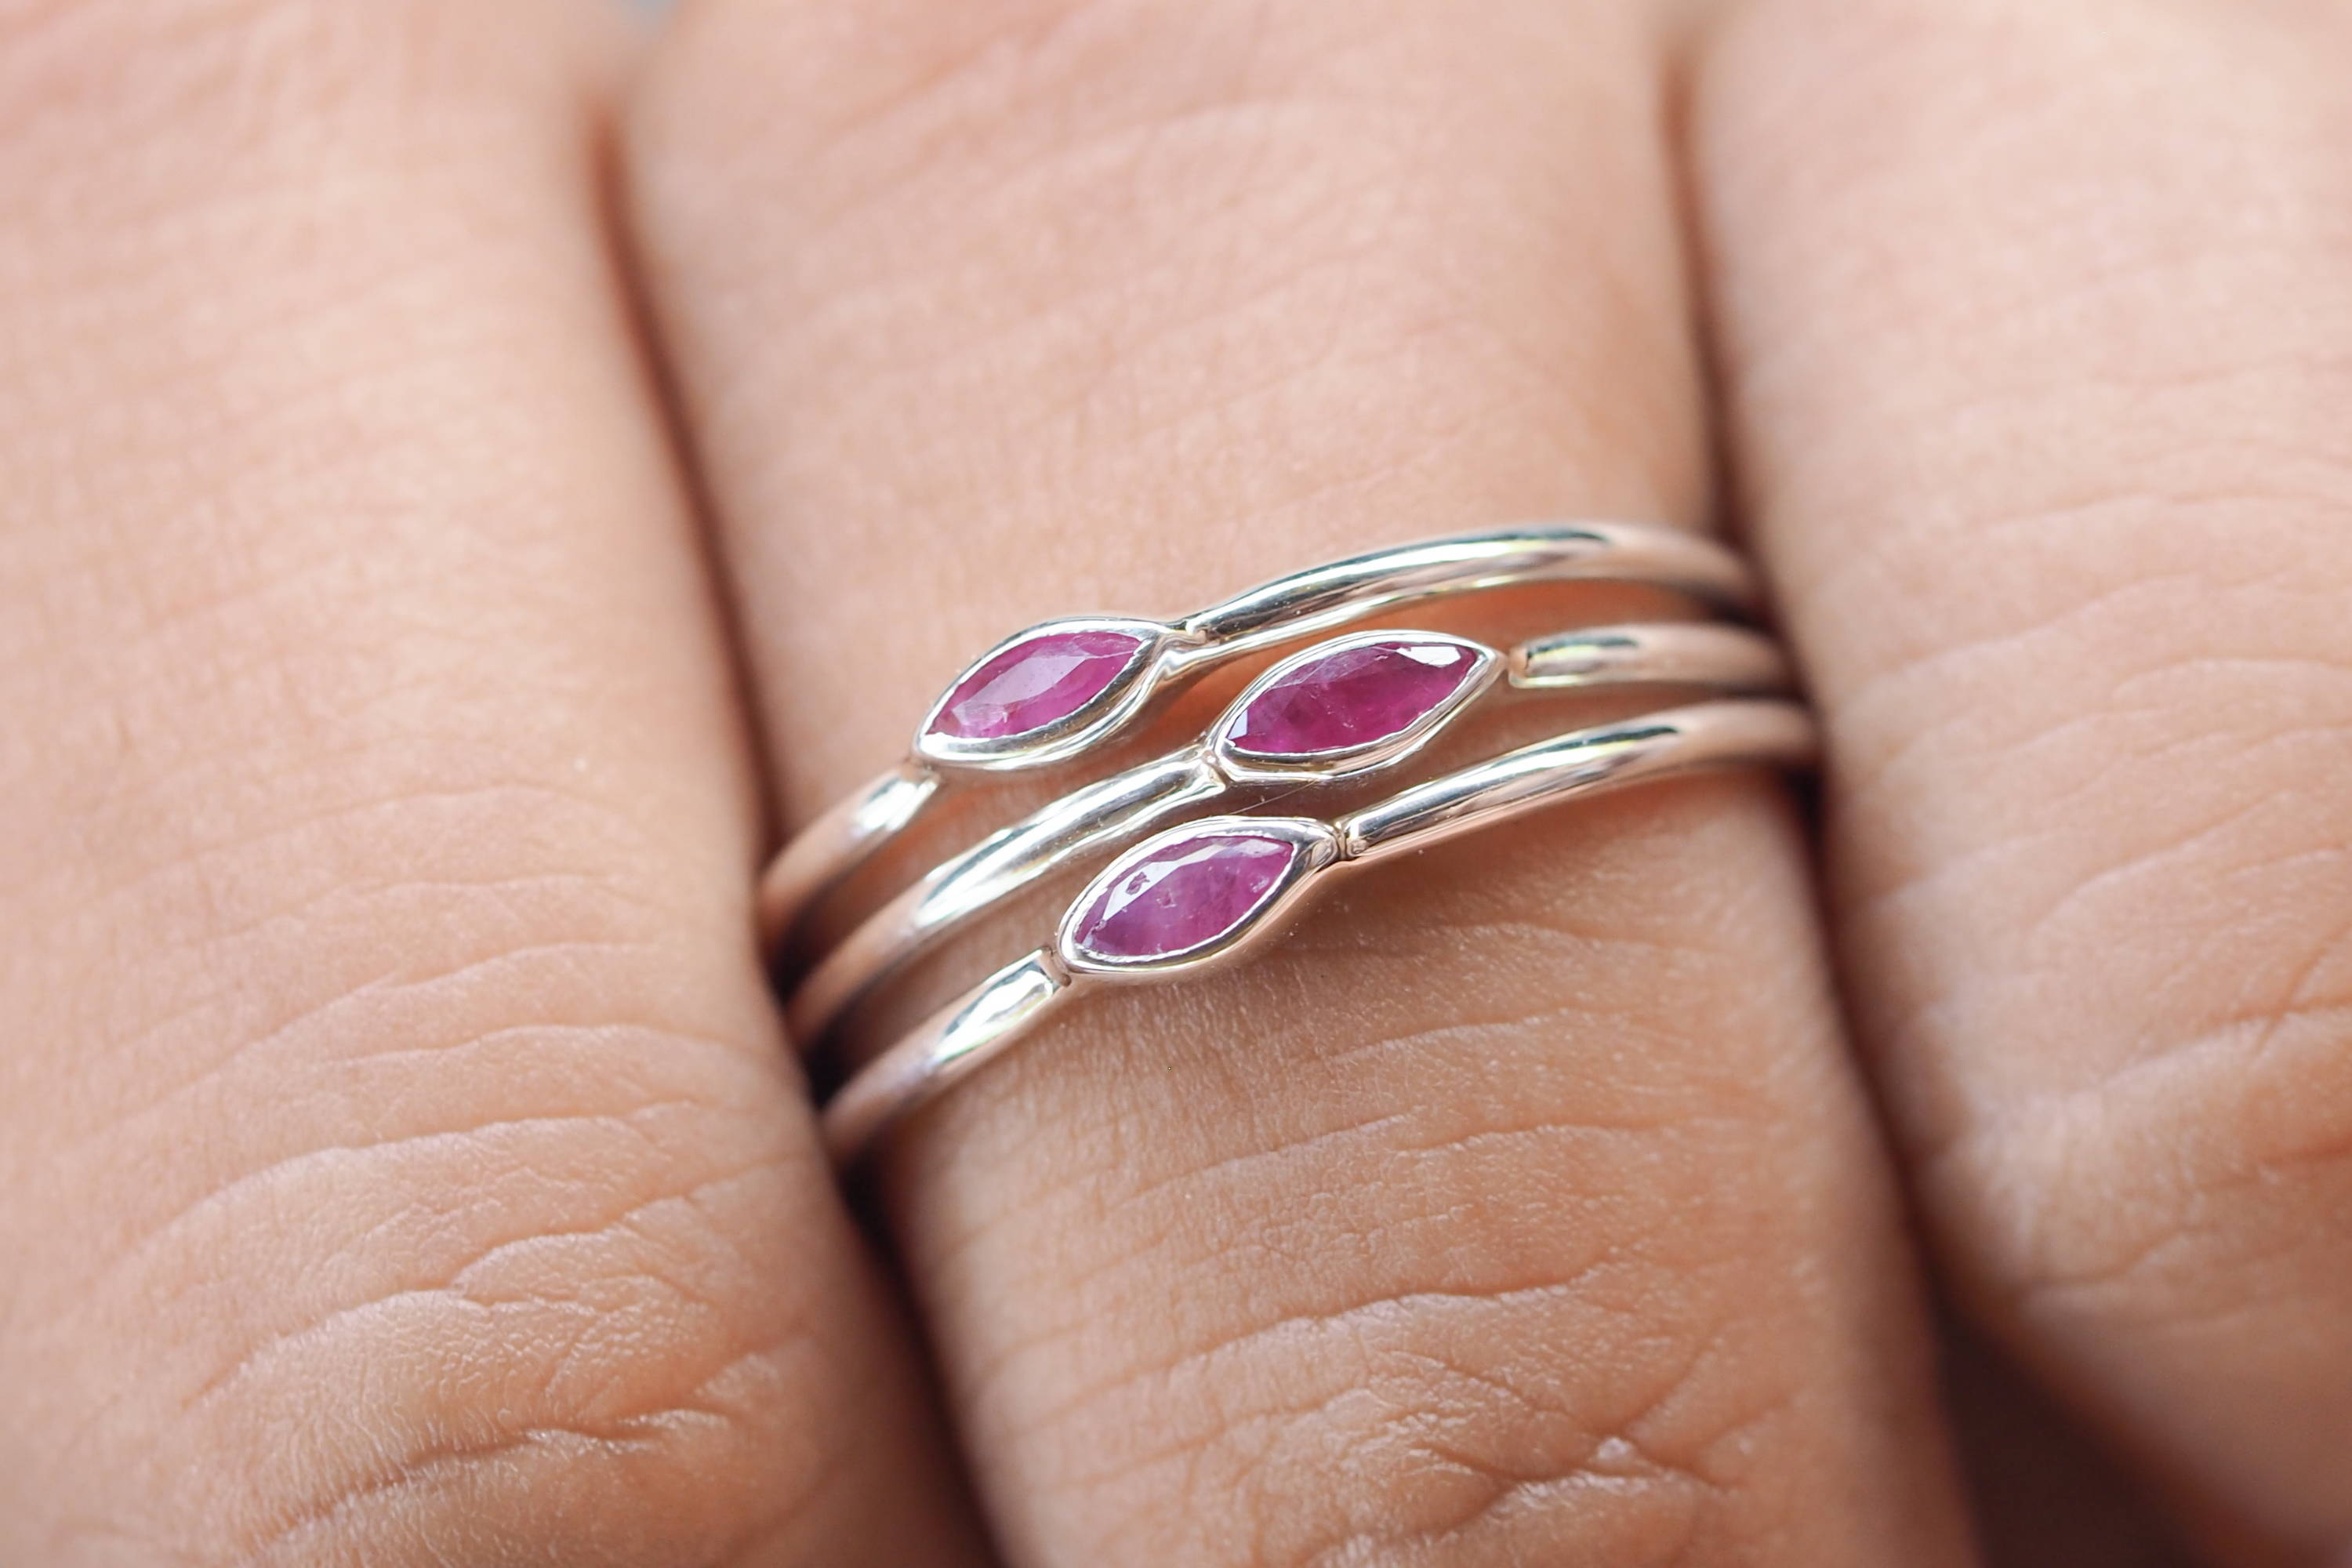 Dainty silver stacking ring with rubies